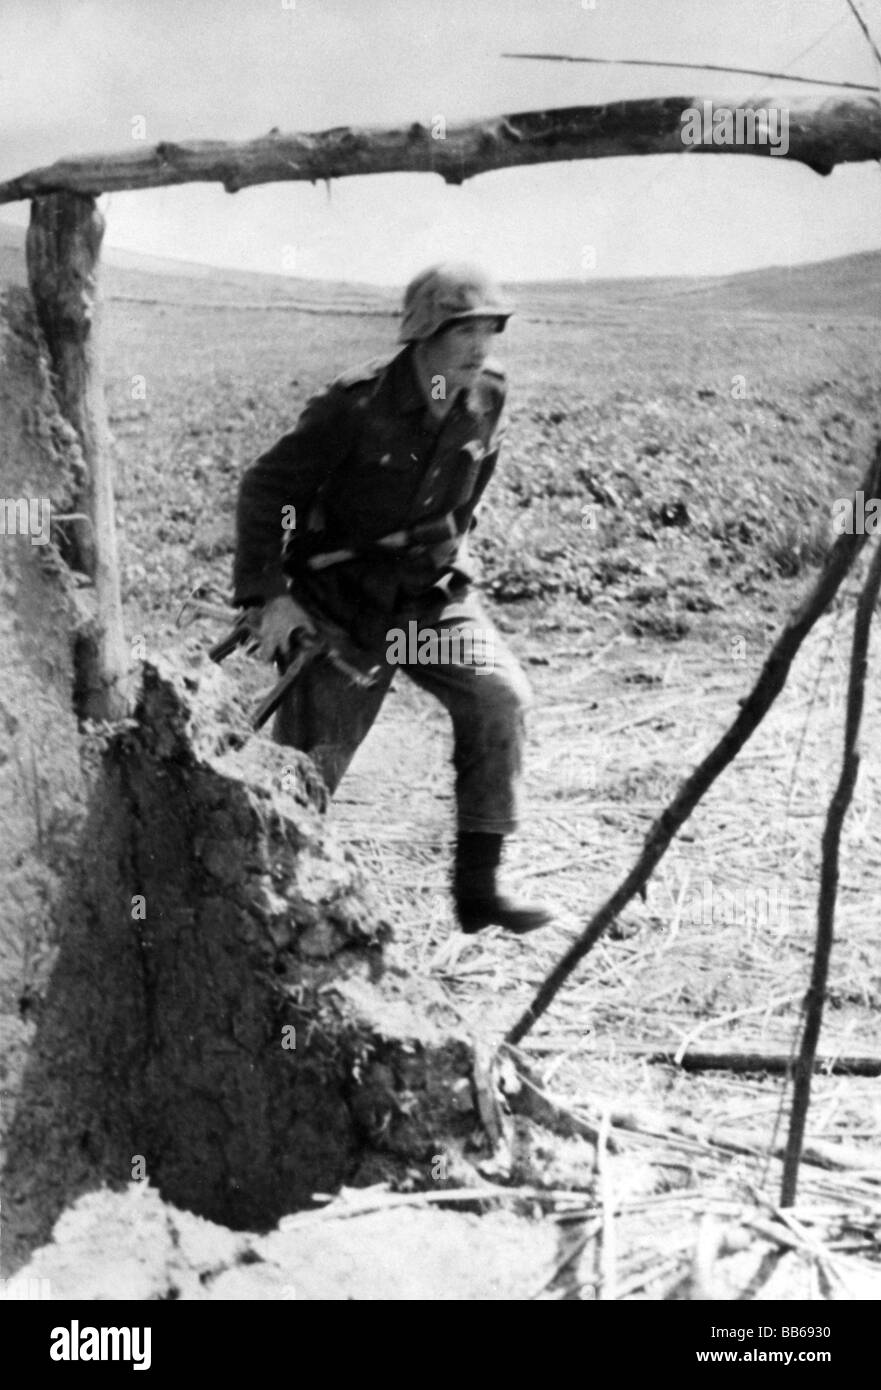 events, Second World War / WWII, Russia 1942 / 1943, German soldier attacking, Additional-Rights-Clearances-NA - Stock Image